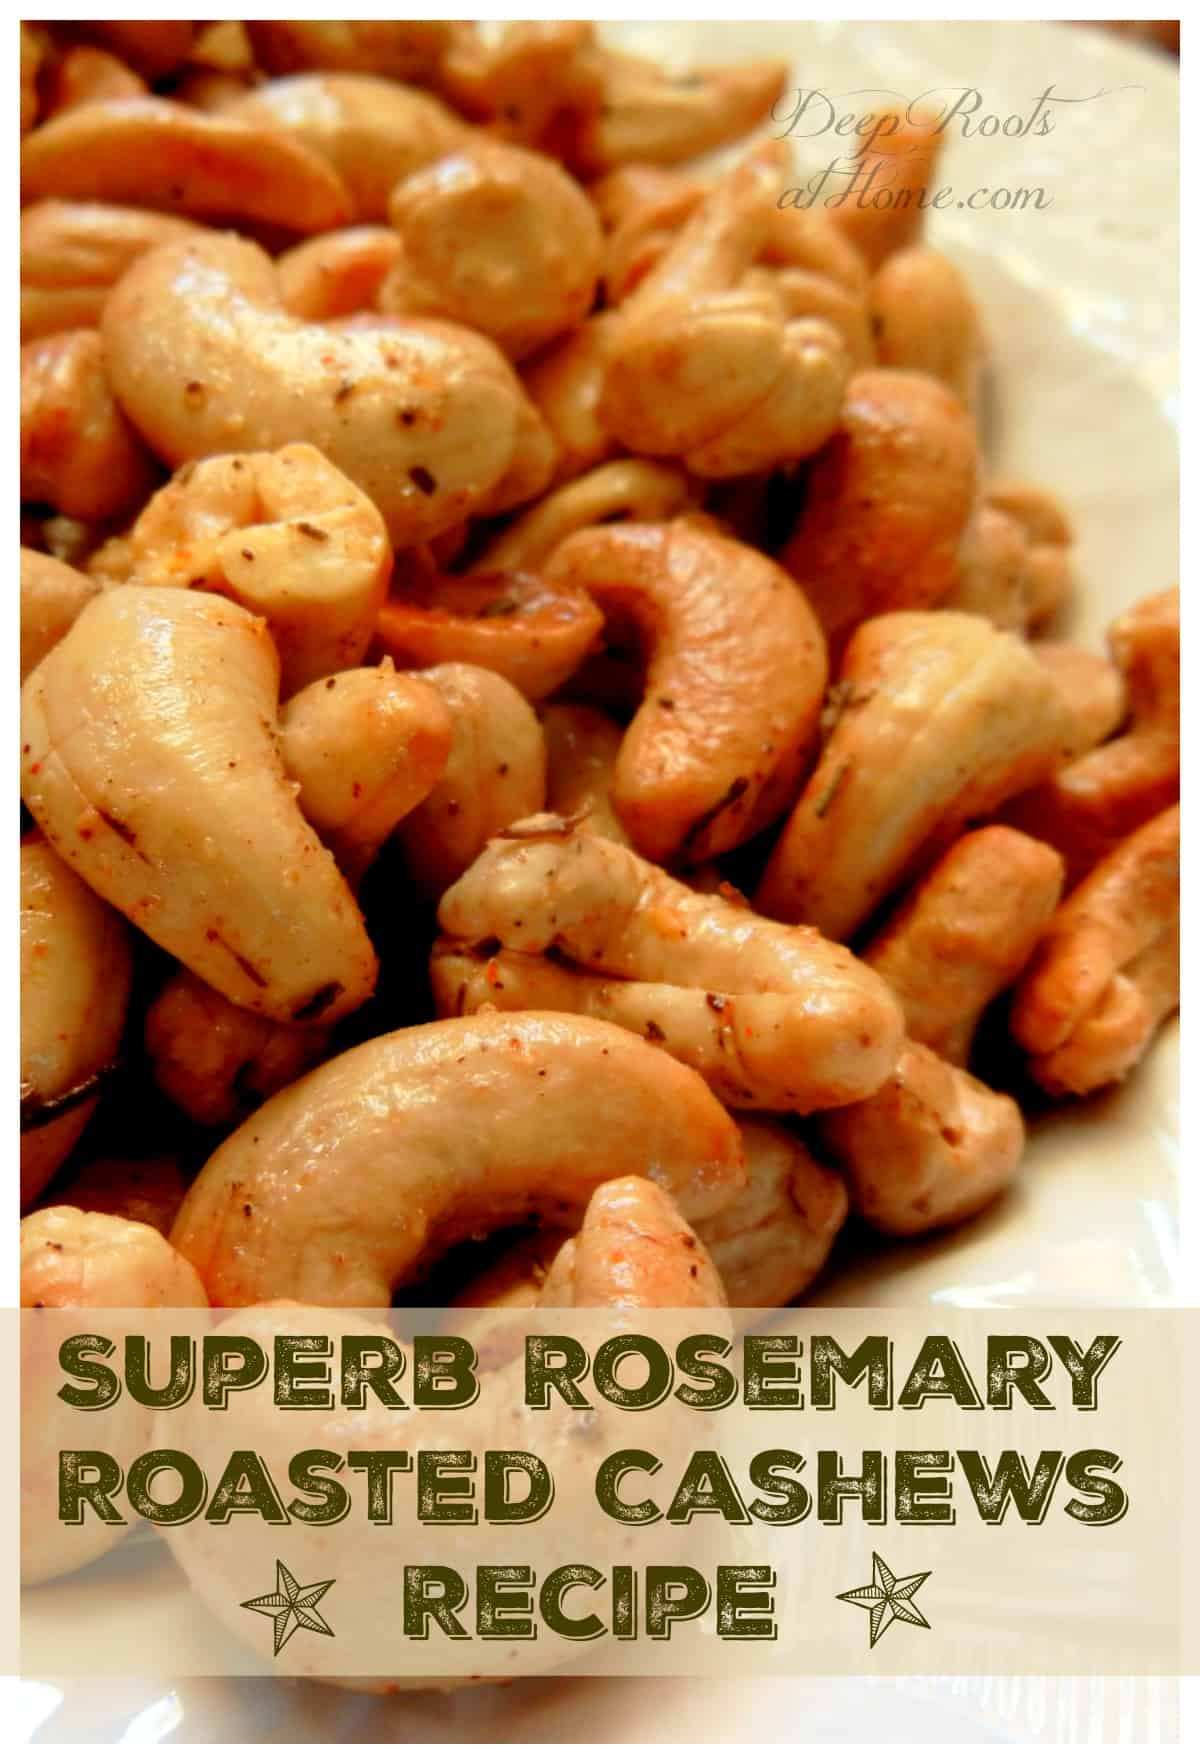 Superb Rosemary Roasted Cashews Recipe & Candid Camera. Fresh roasted cashews with rosemary and spices